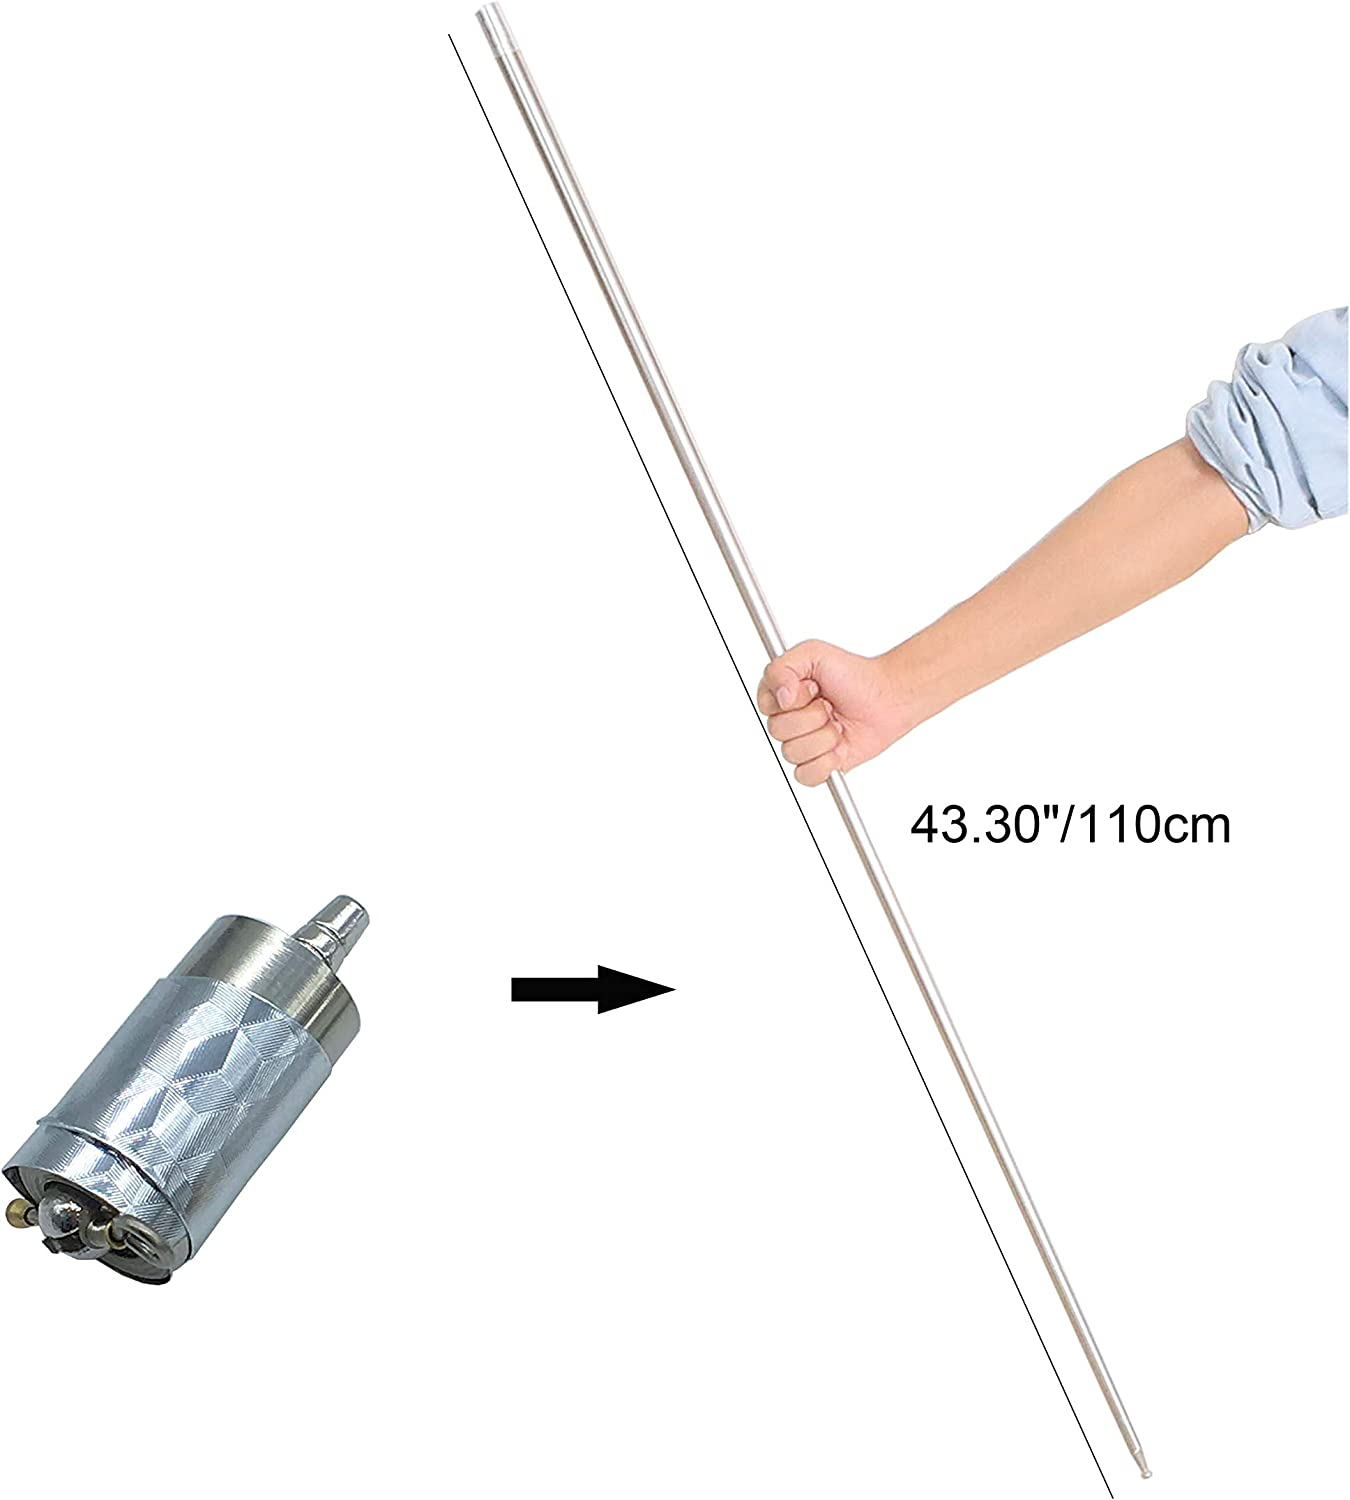 "Kingmagic Metal Appearing Cane Magic Wand for Professional Magician Use Only for Adult Stage Magic Trick Magic Gimmick Illusion Silk to Wand With Video Tutorial (Silver,43.30""/110cm)"